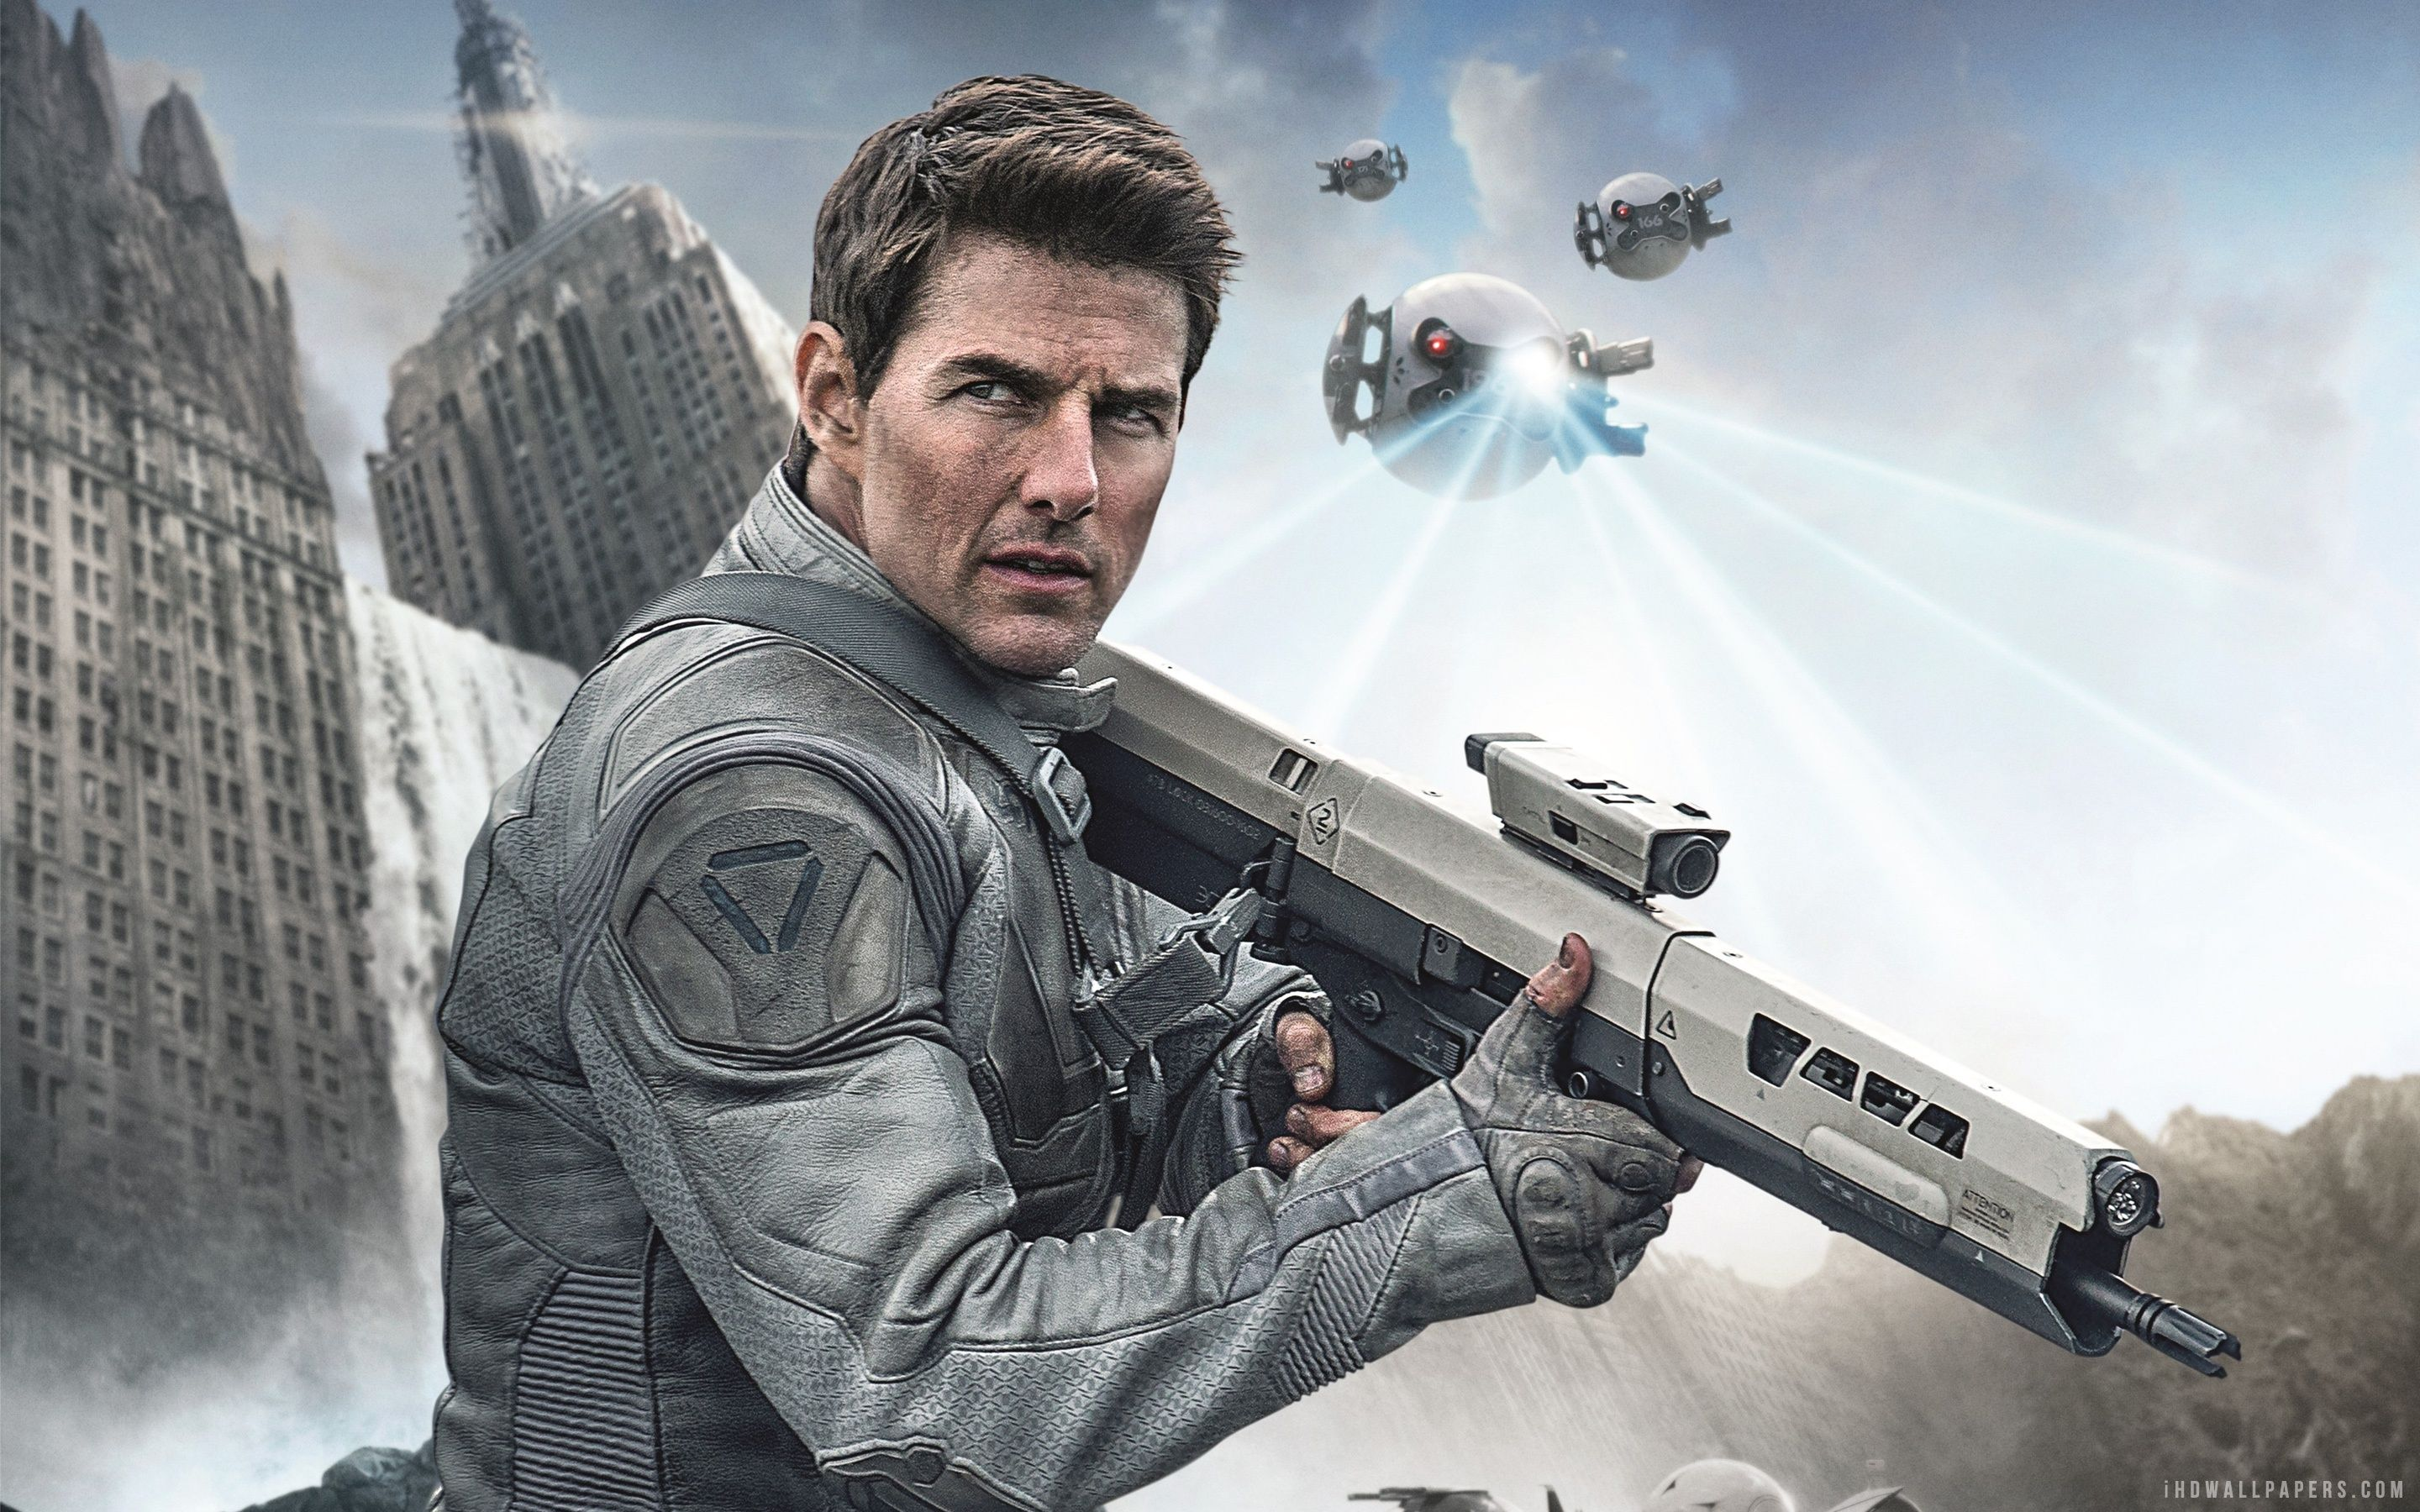 oblivion movie   Google Search Makes Me Smile Tom cruise 2880x1800